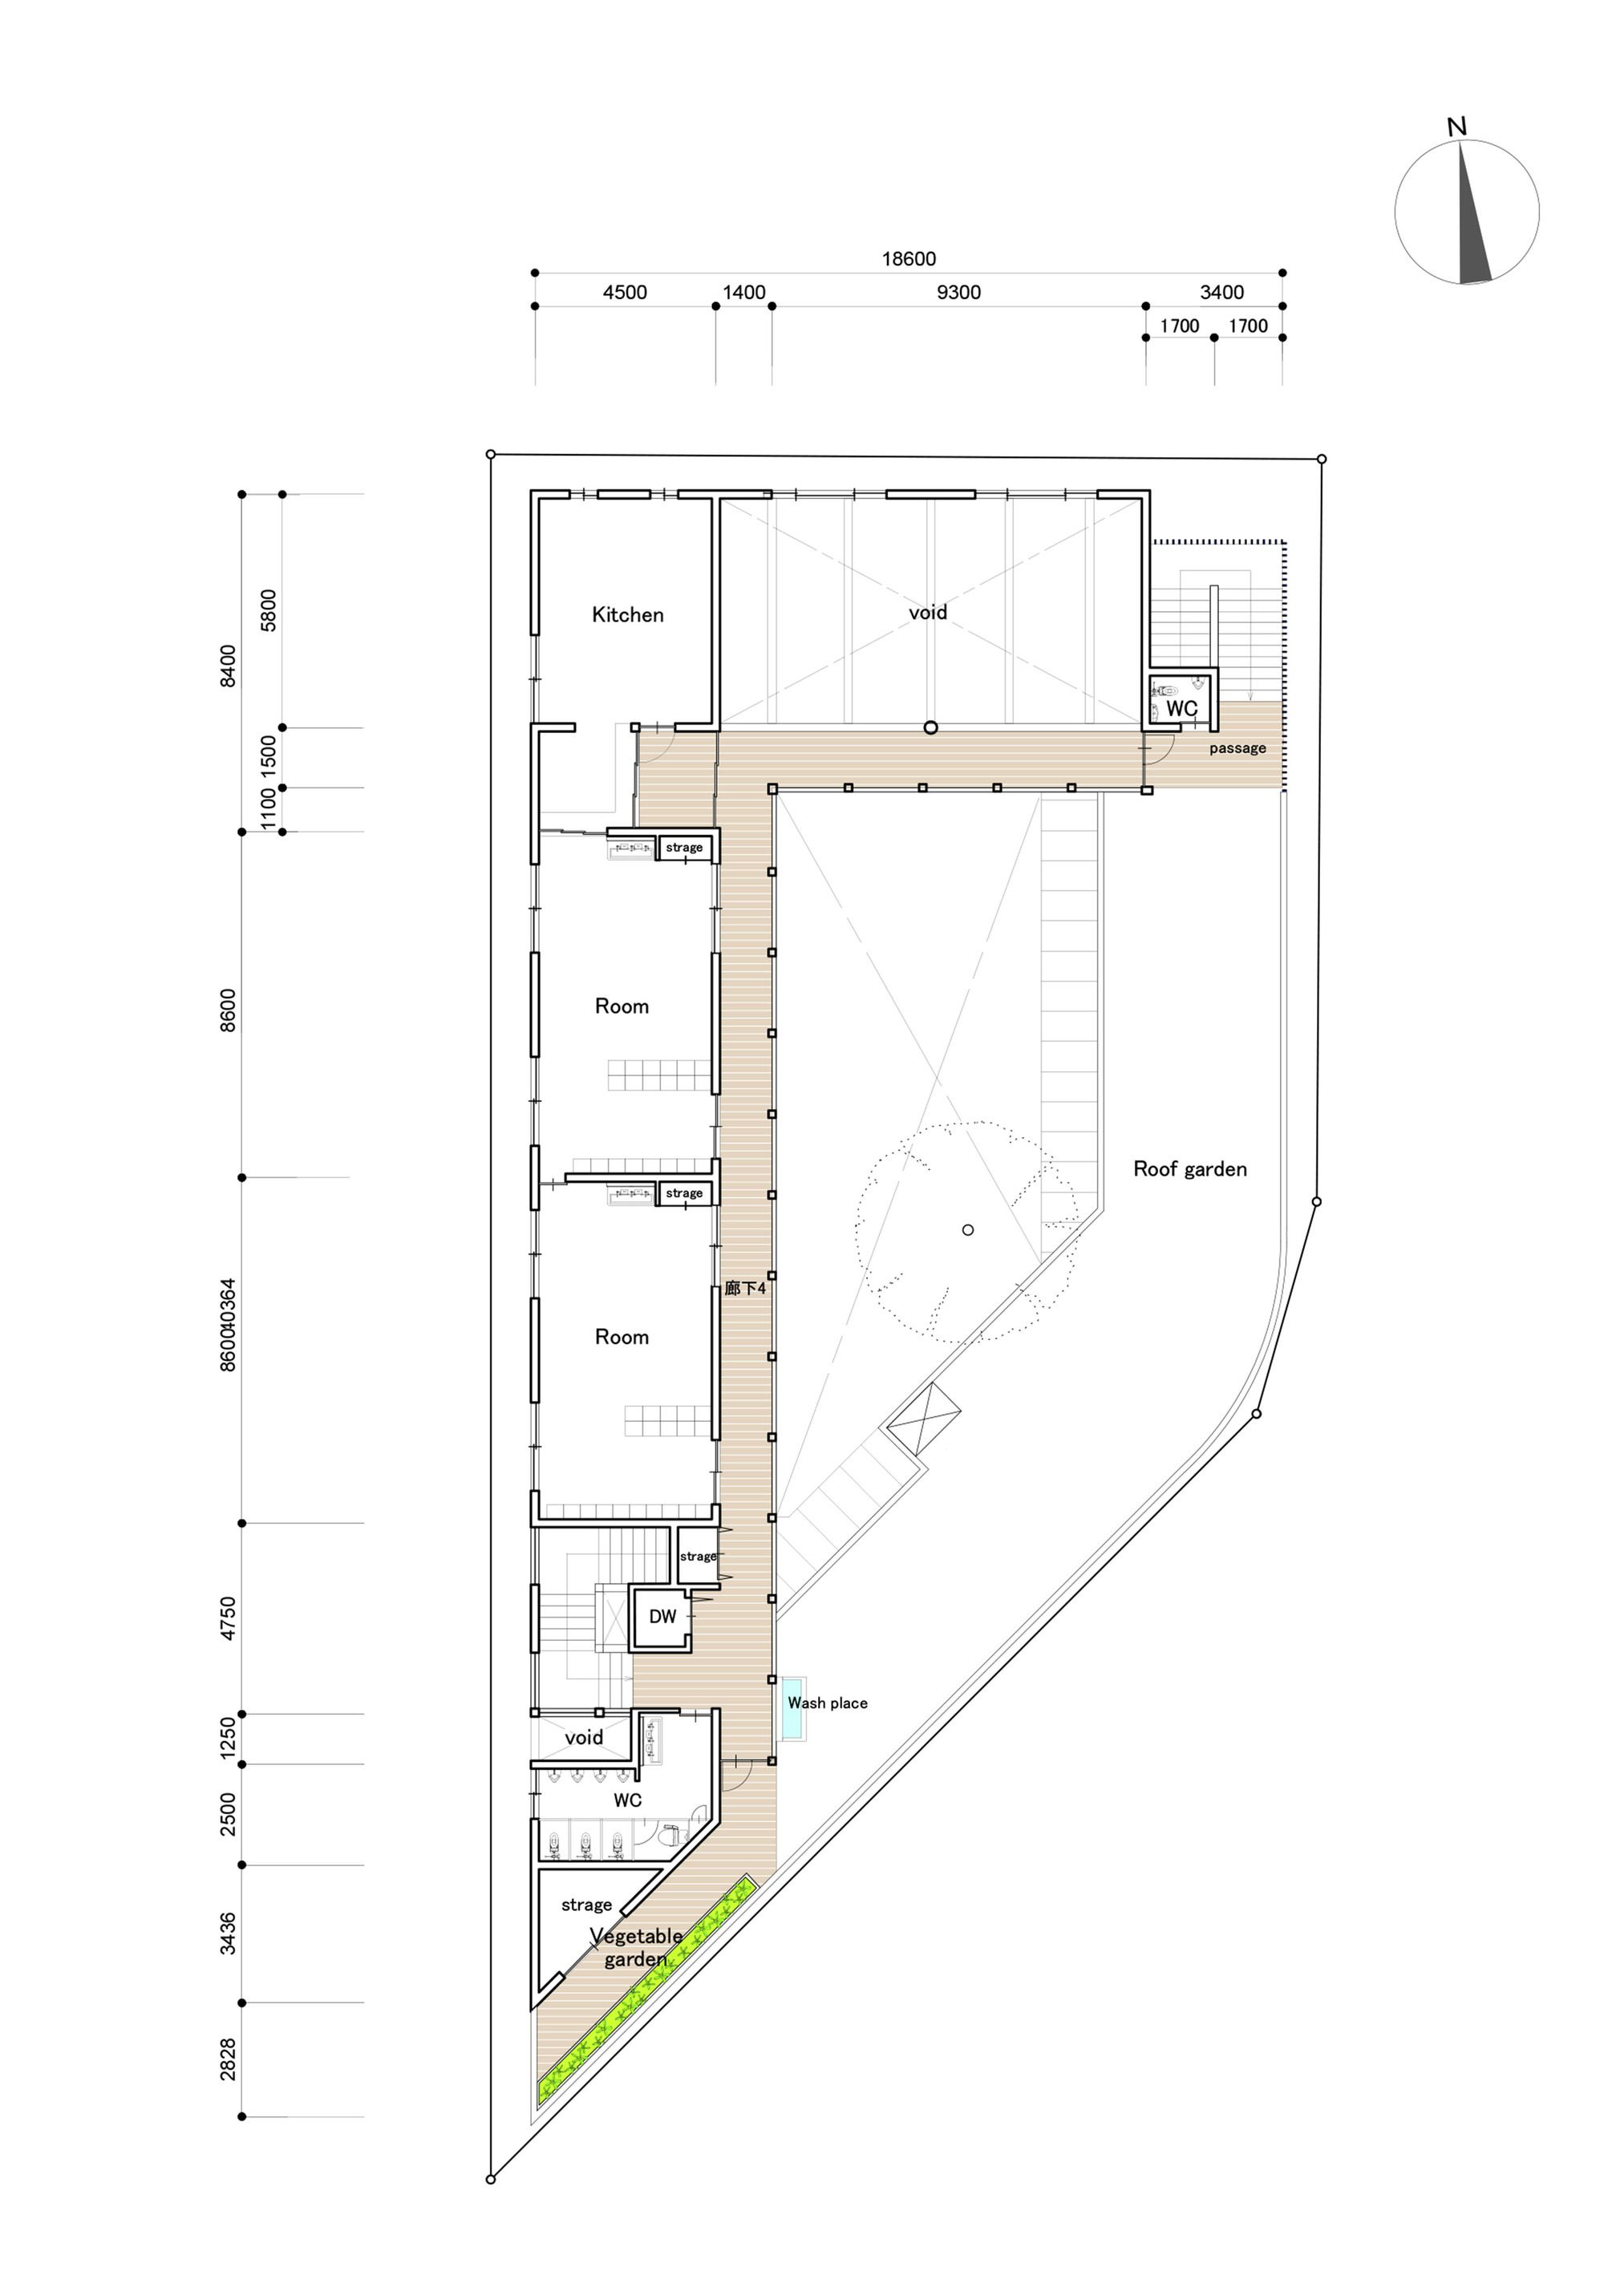 Gallery Of Takeno Nursery Tadashi Suga Architects 12 Floor Plan Design Playground Floor Plan Floor Plans